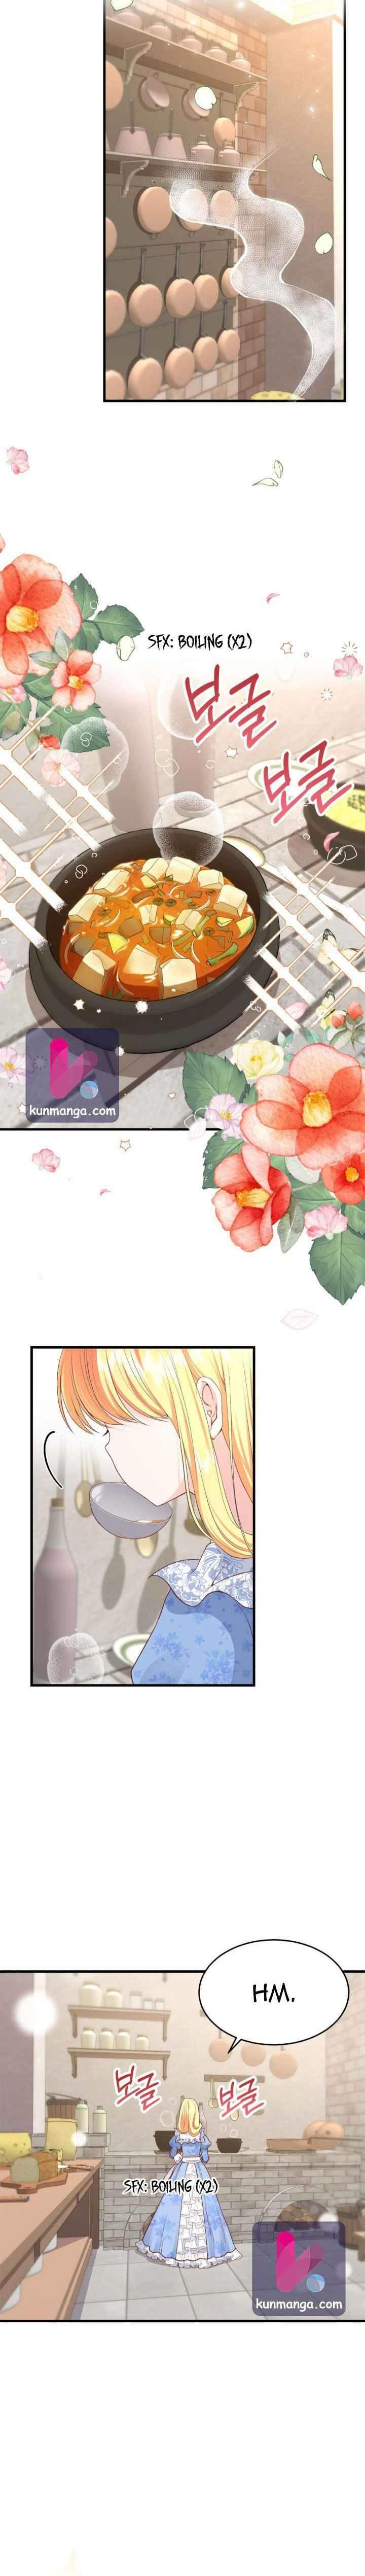 I Became The Wife Of The Monstrous Crown Prince Chapter 26 page 12 - Mangakakalots.com